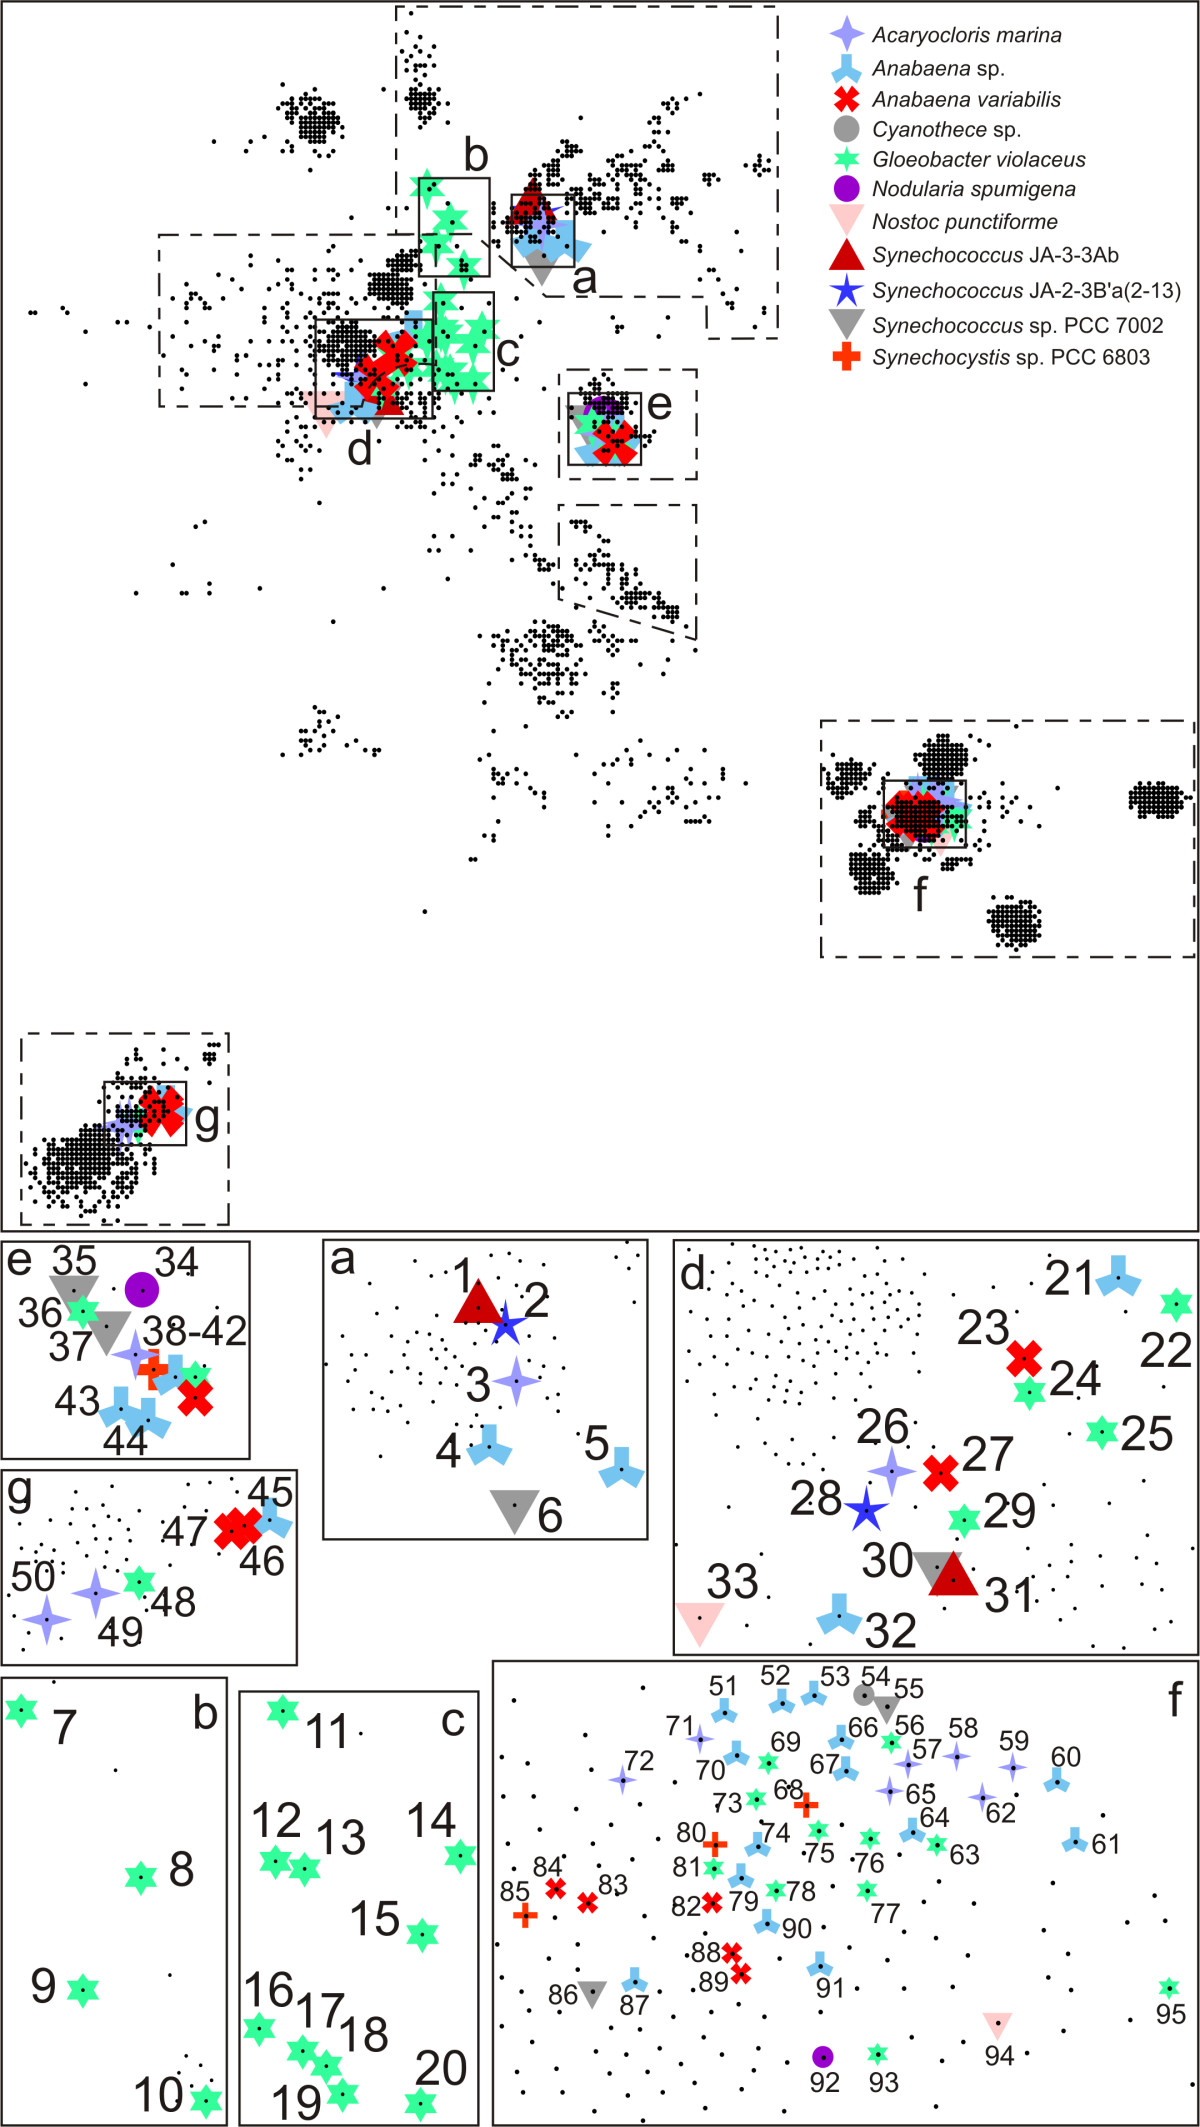 http://static-content.springer.com/image/art%3A10.1186%2F1741-7007-7-68/MediaObjects/12915_2009_Article_276_Fig3_HTML.jpg